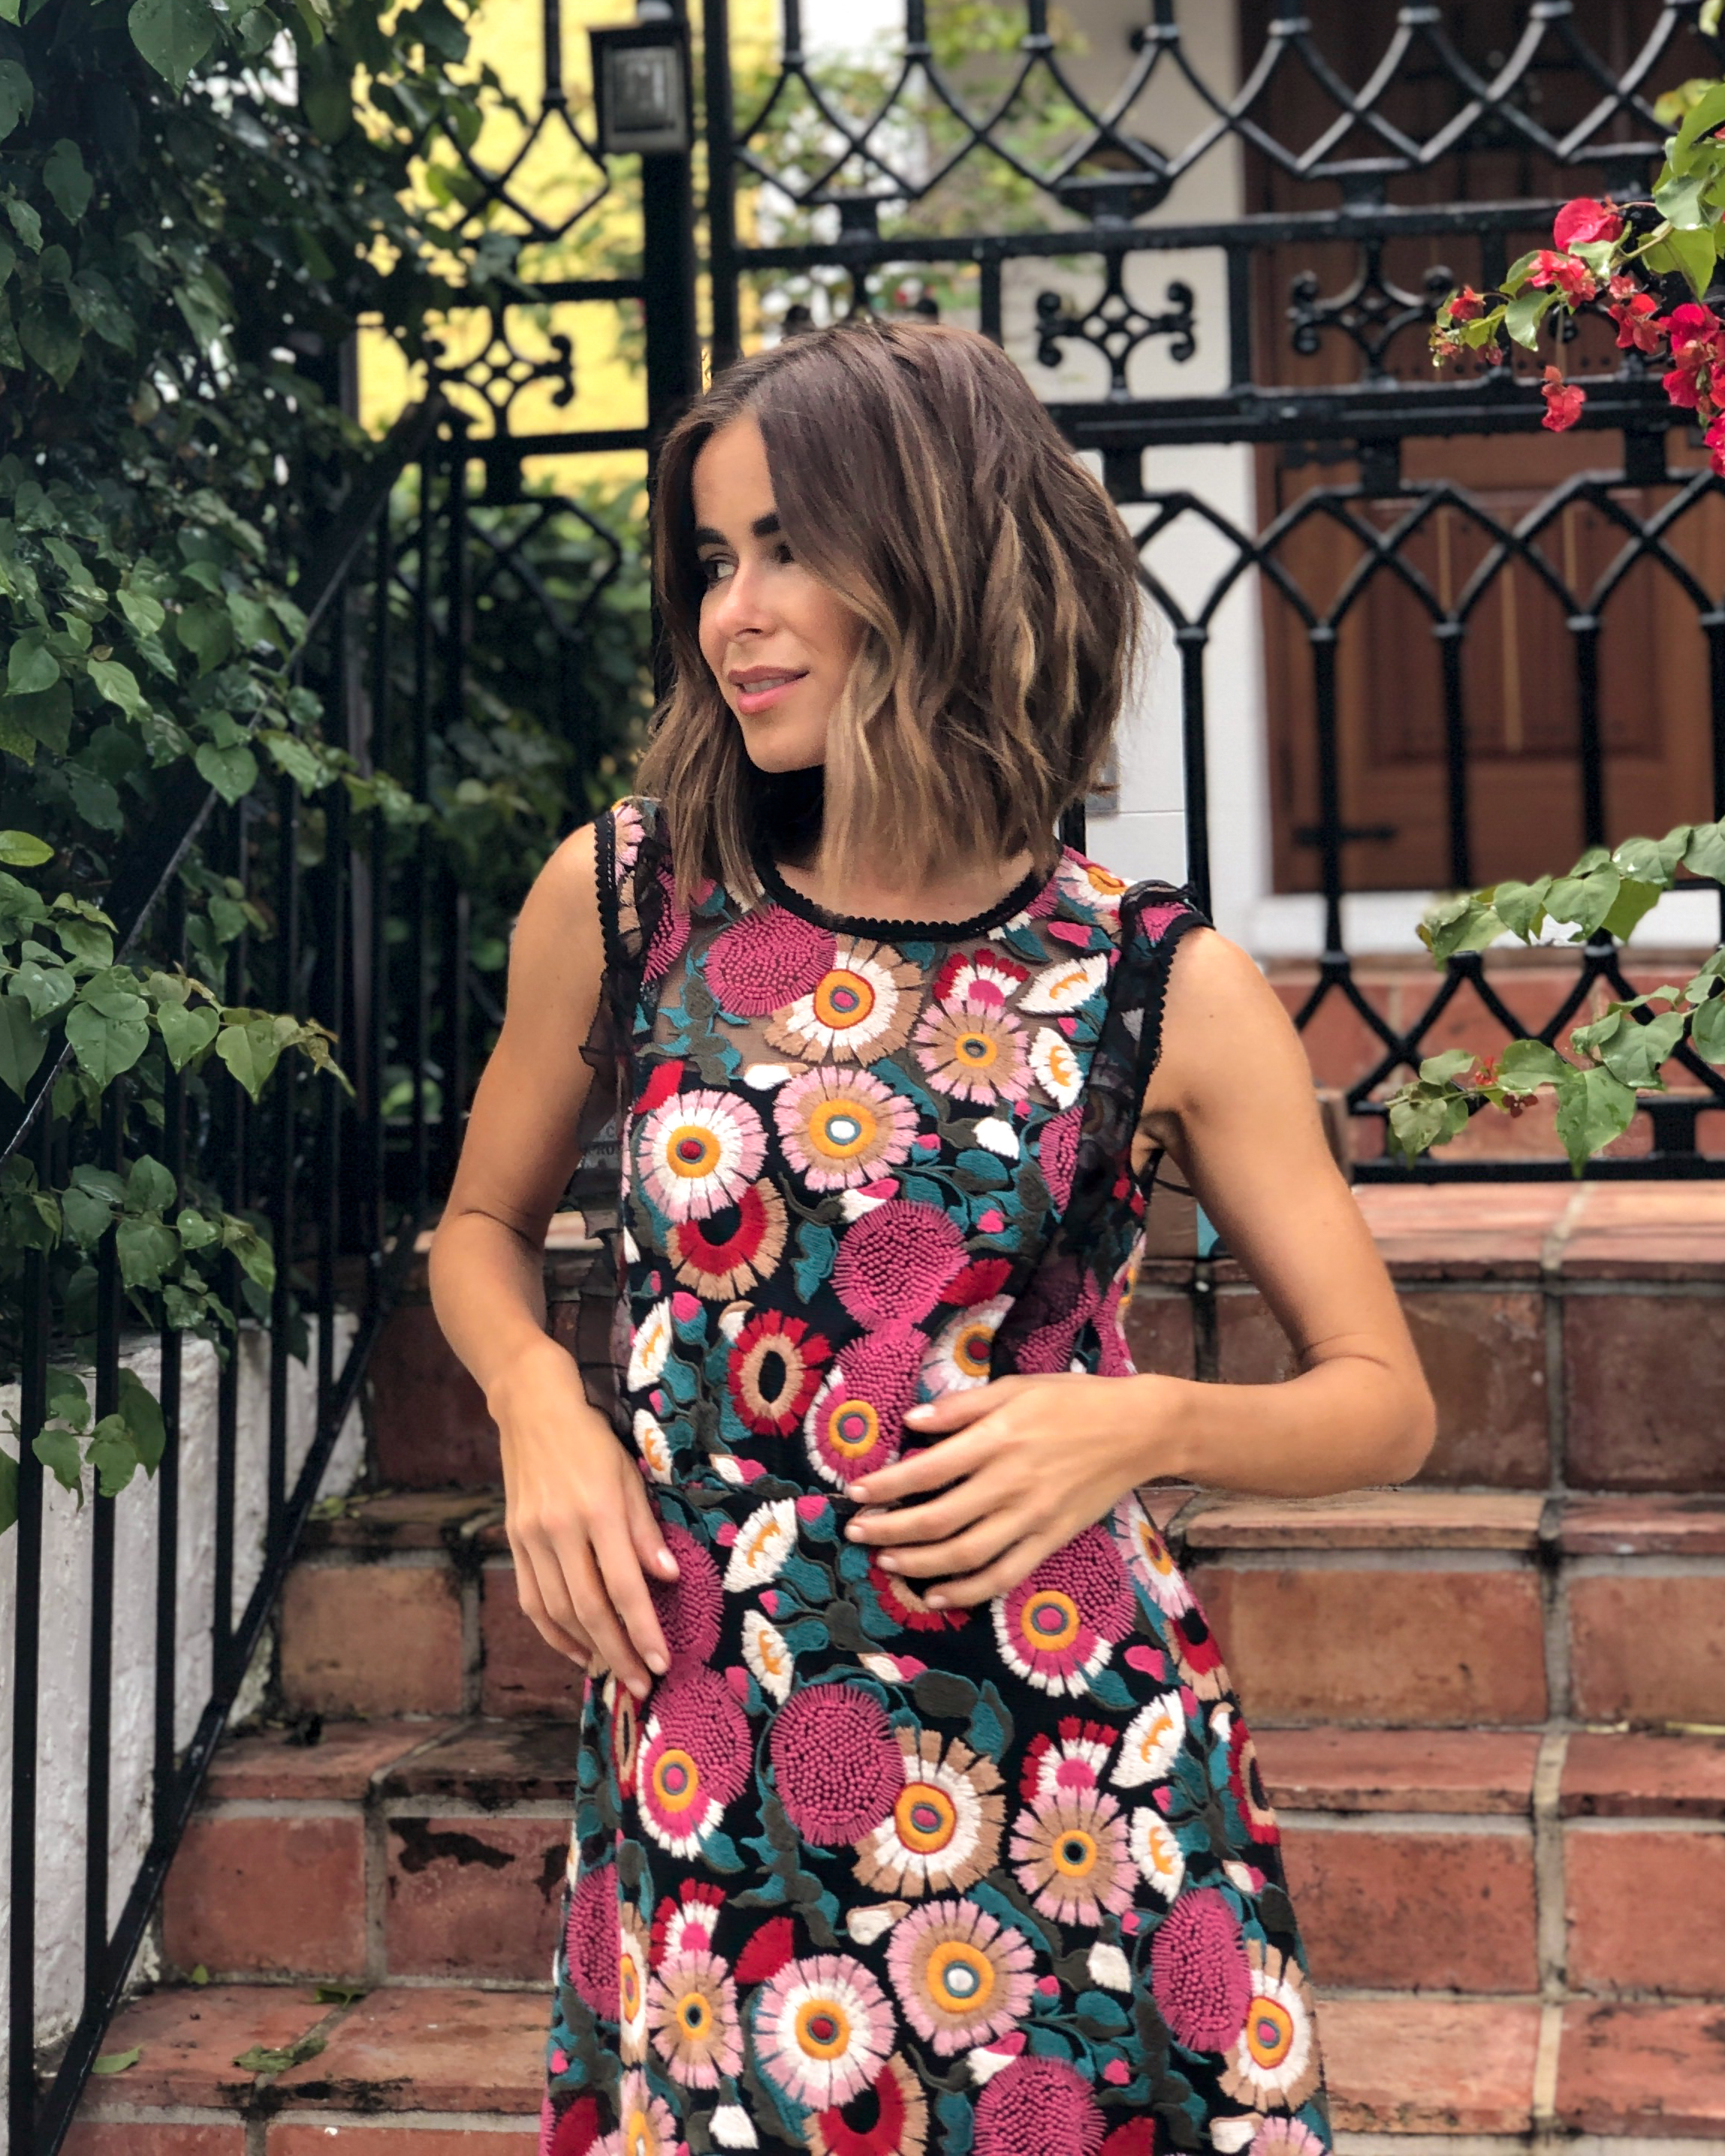 Style Blogger Stephanie Hill from The Style Bungalow wears an ootd featuring Valentino dress